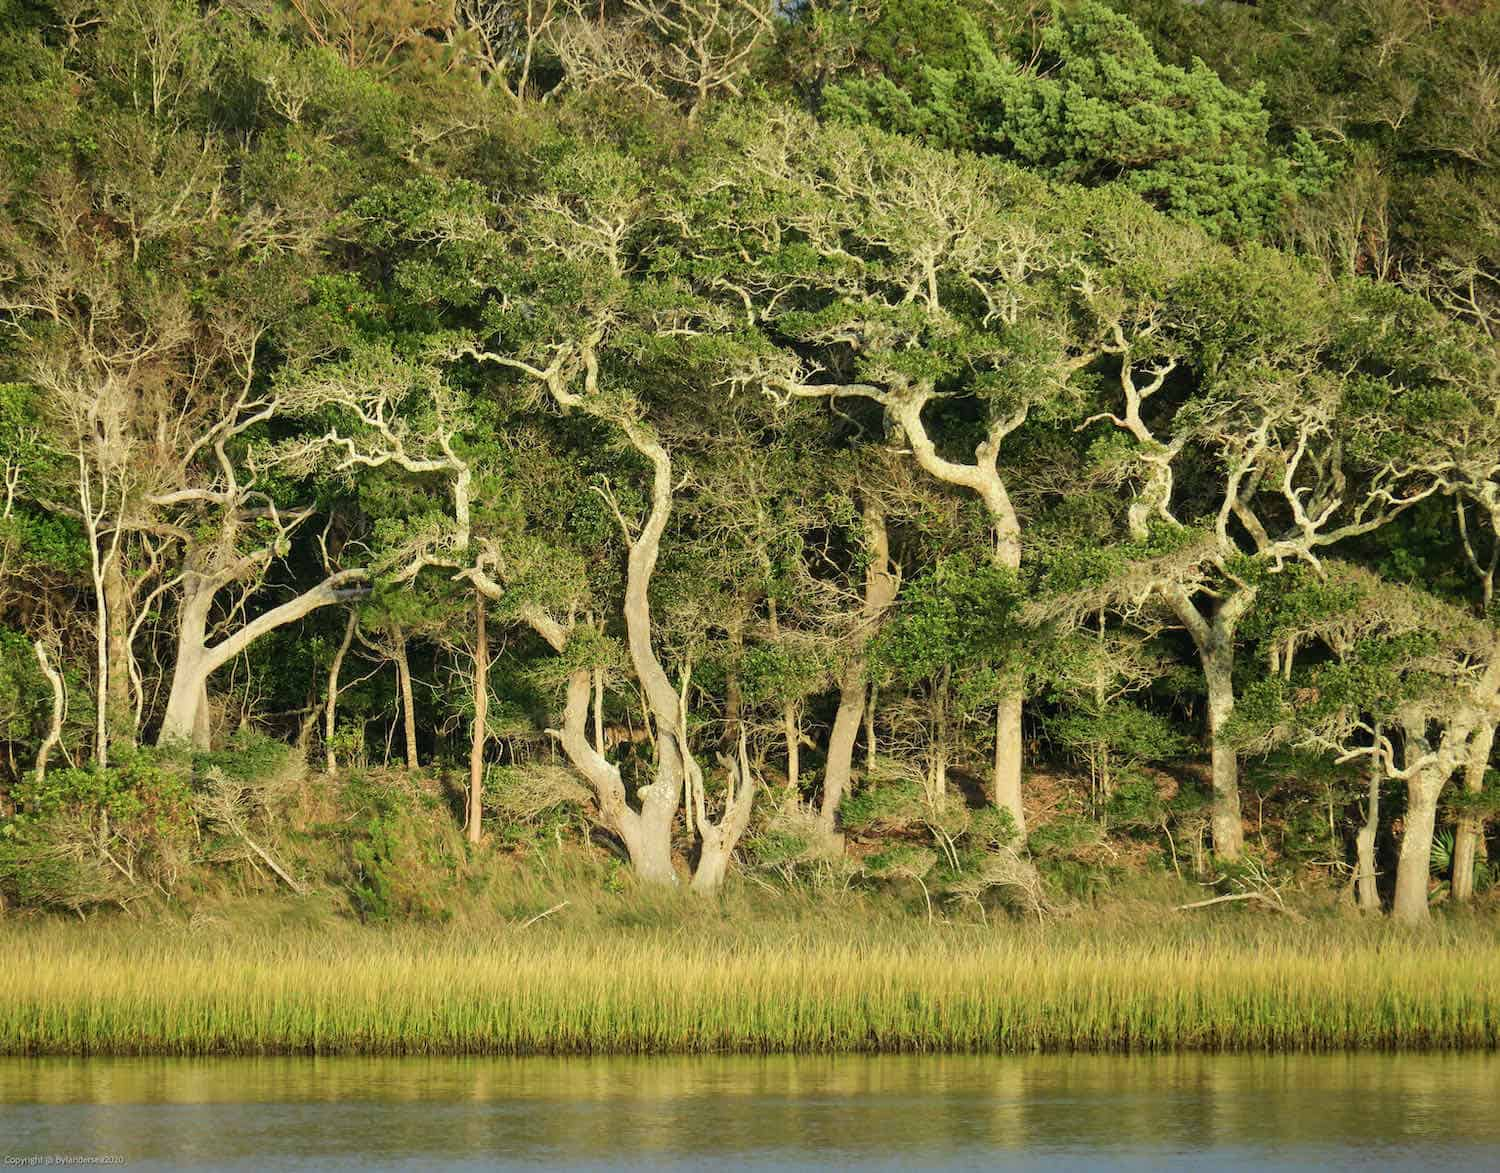 whimsically shaped trees in a maritime forest